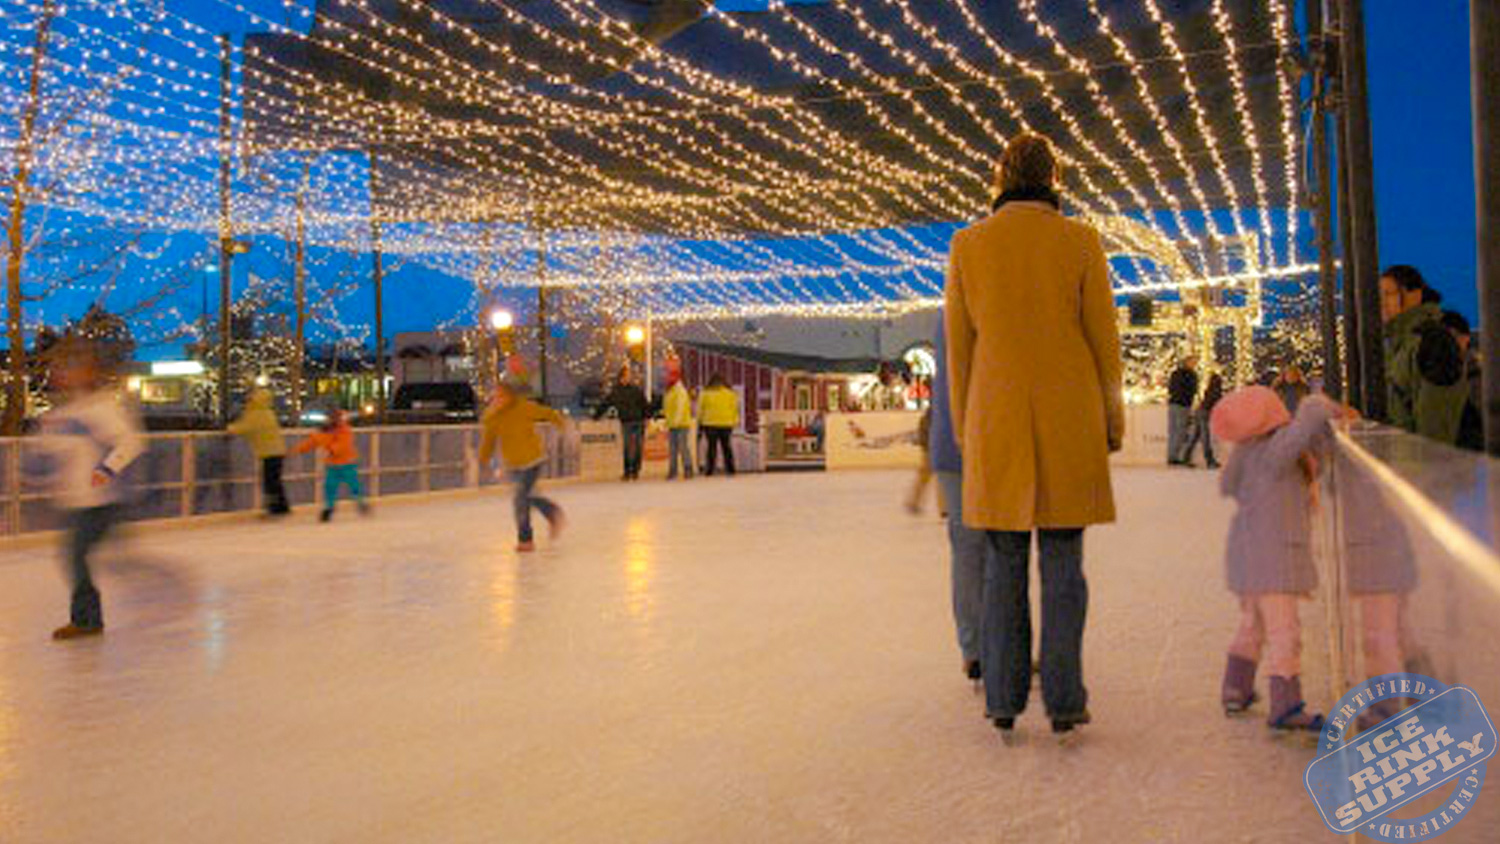 Ice Skating Rink South Haven, Michigan